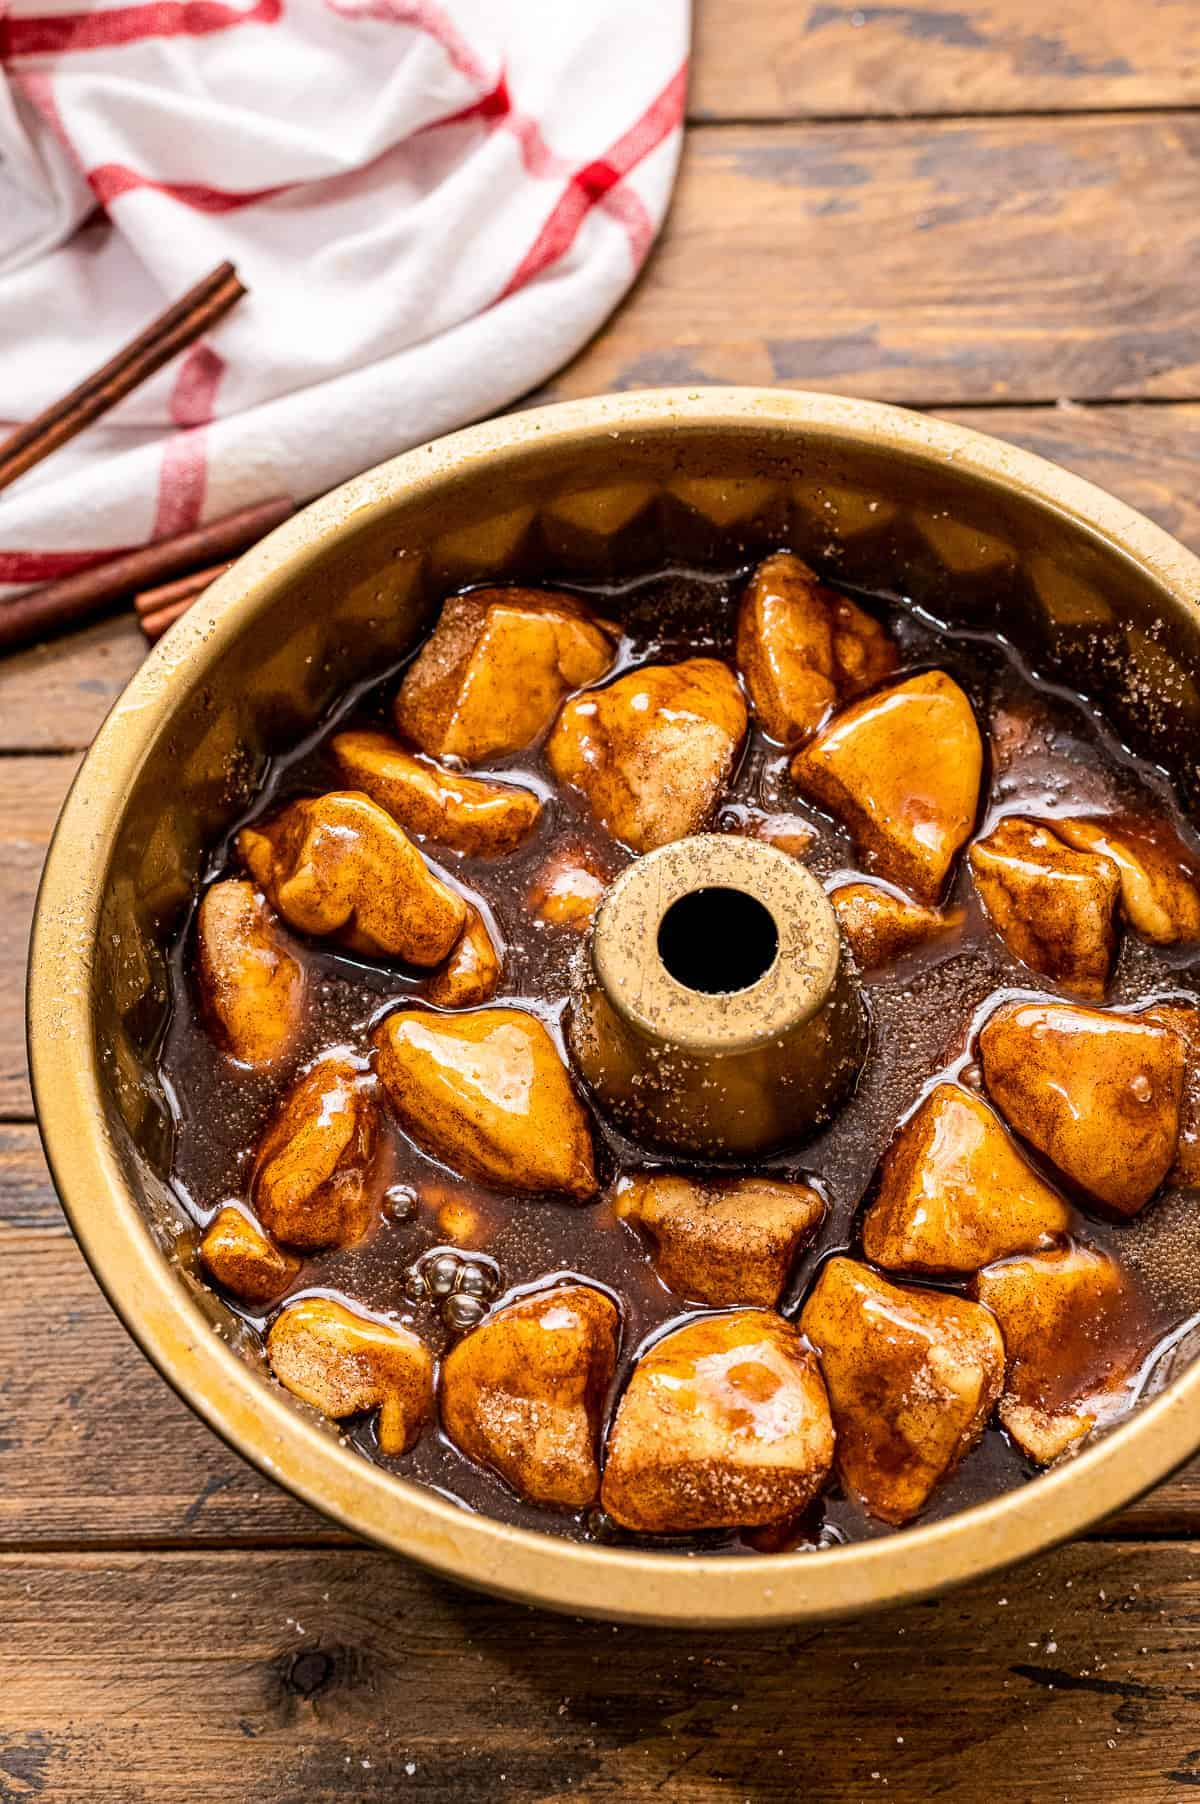 A bundt pan with monkey bread covered with caramel before baking